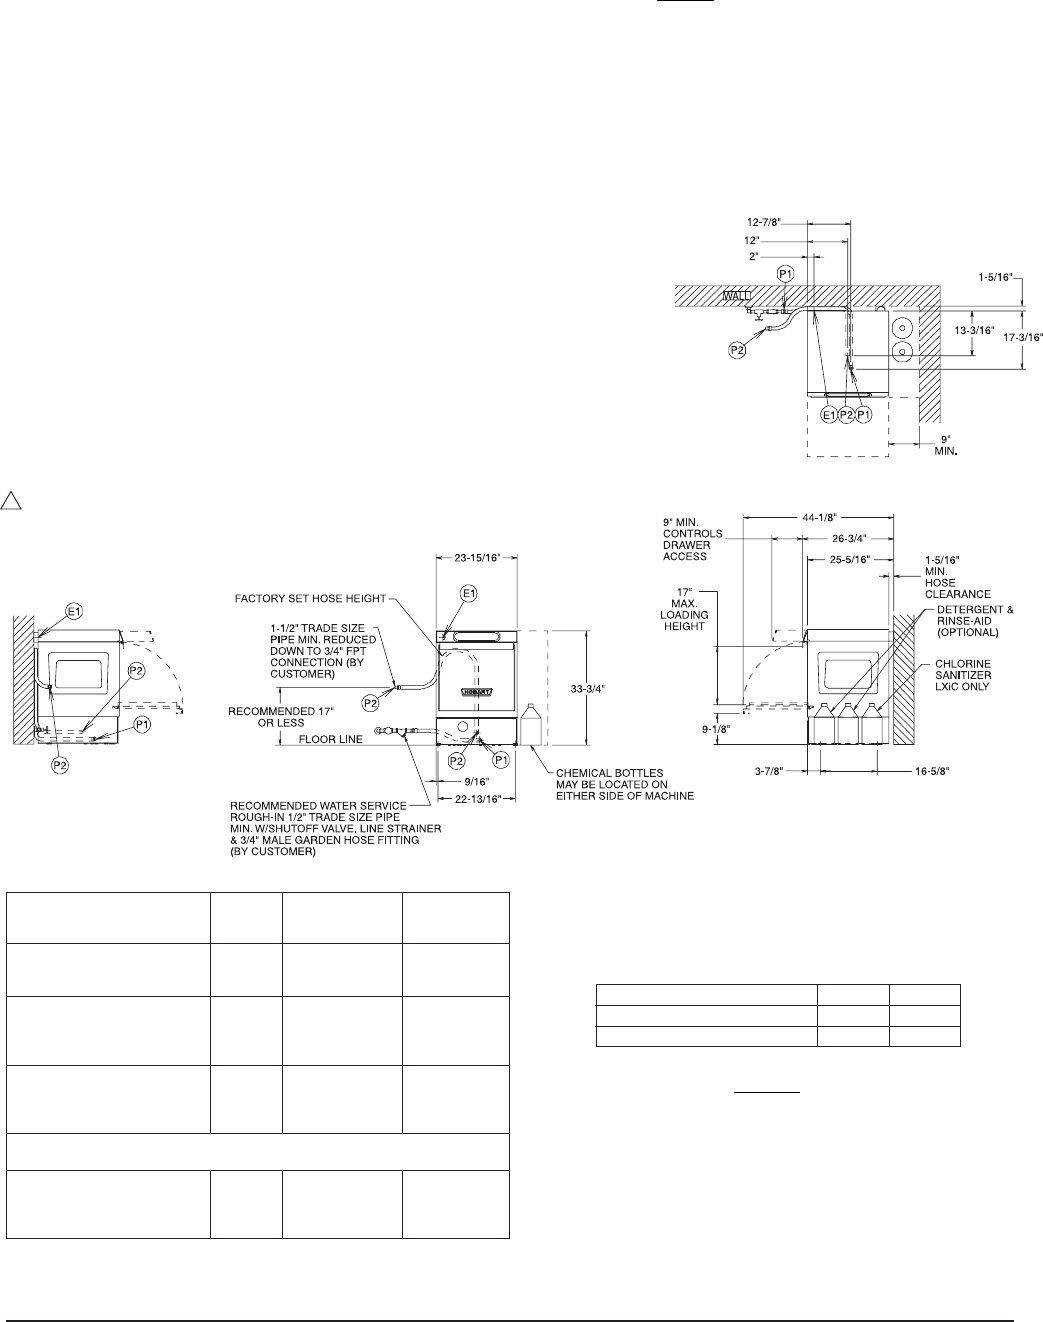 Diagram welding machine wiring pdf inspiring hobart welder old to page 10 of hobart dishwasher lxih ml 130017 user guide